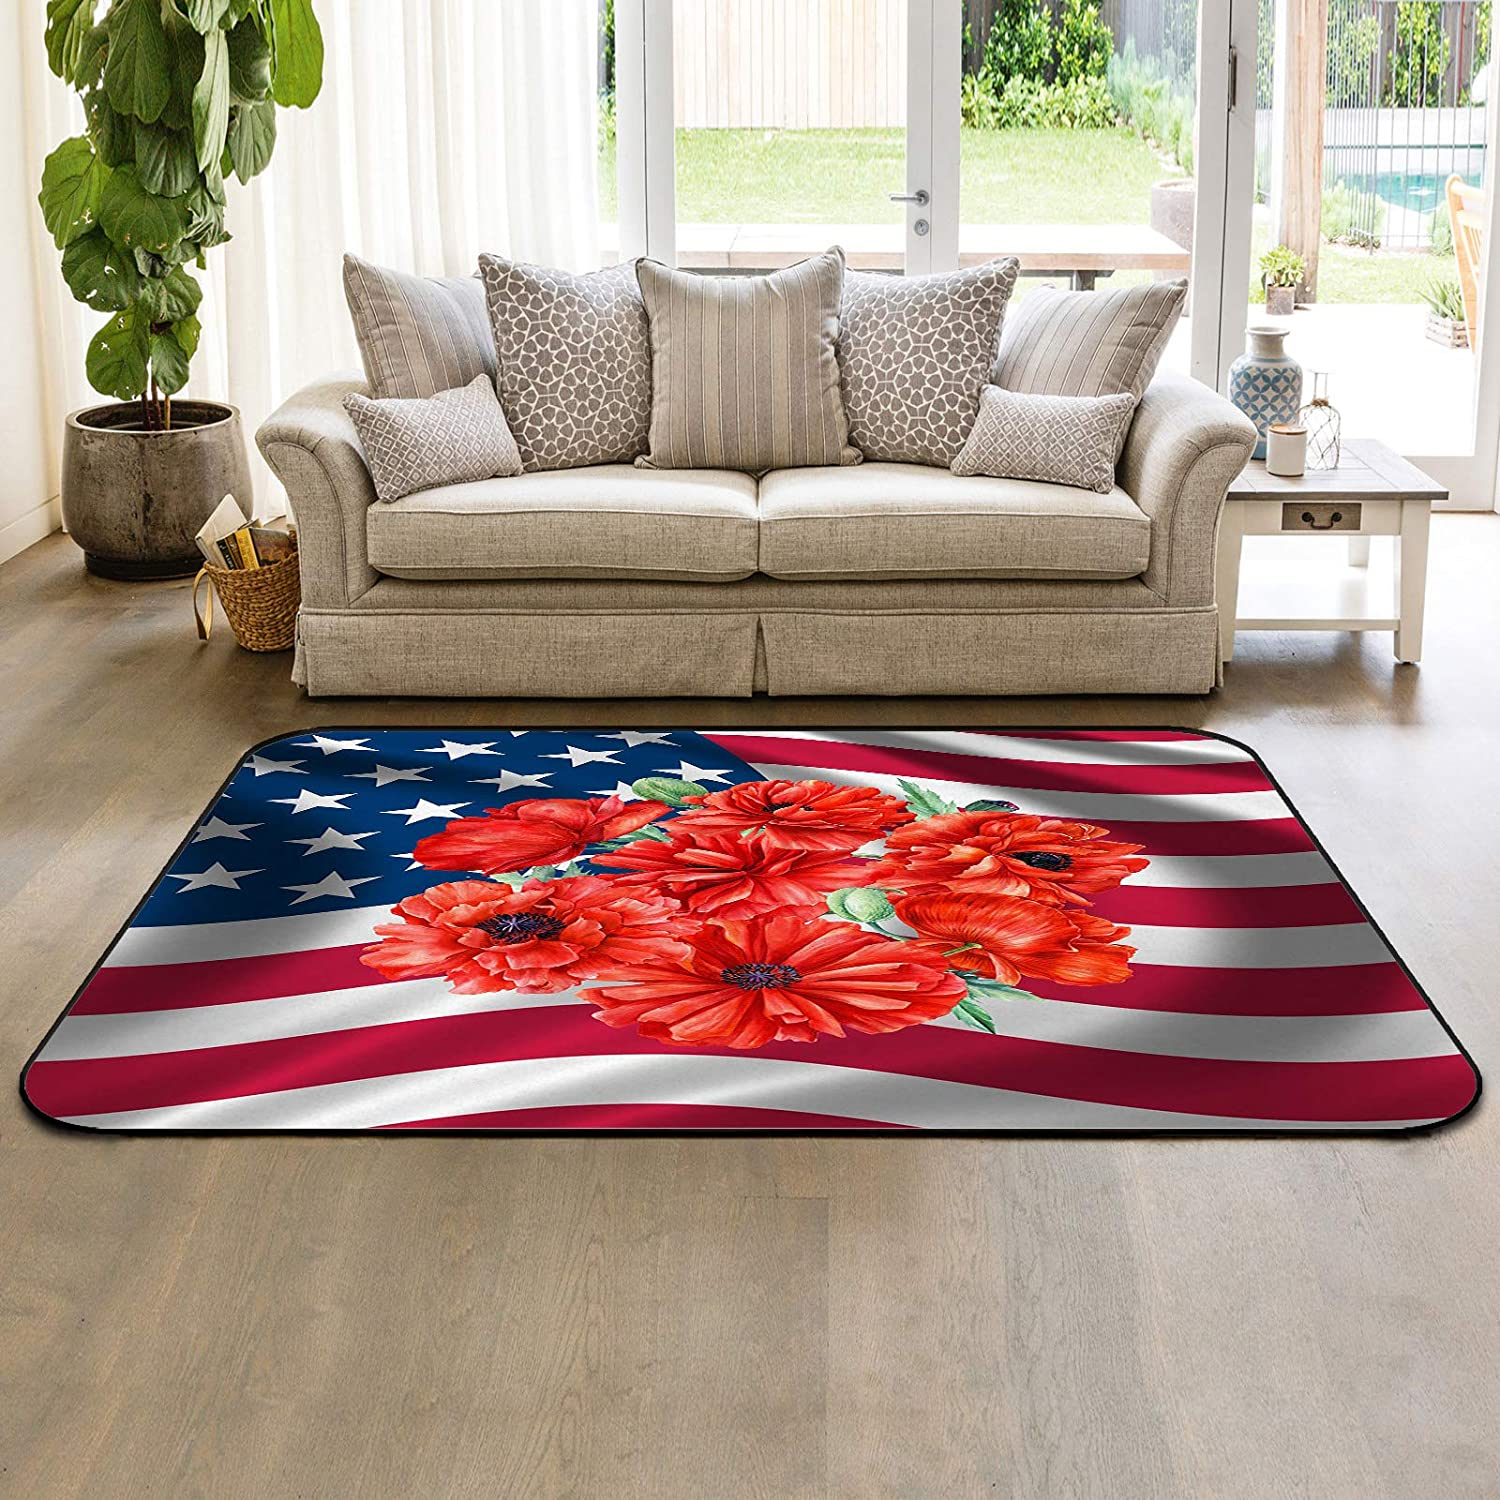 HomeDecorArt Non Slip OFFicial store Indoor Throw Accent Ame Product Carpet Floor Rugs